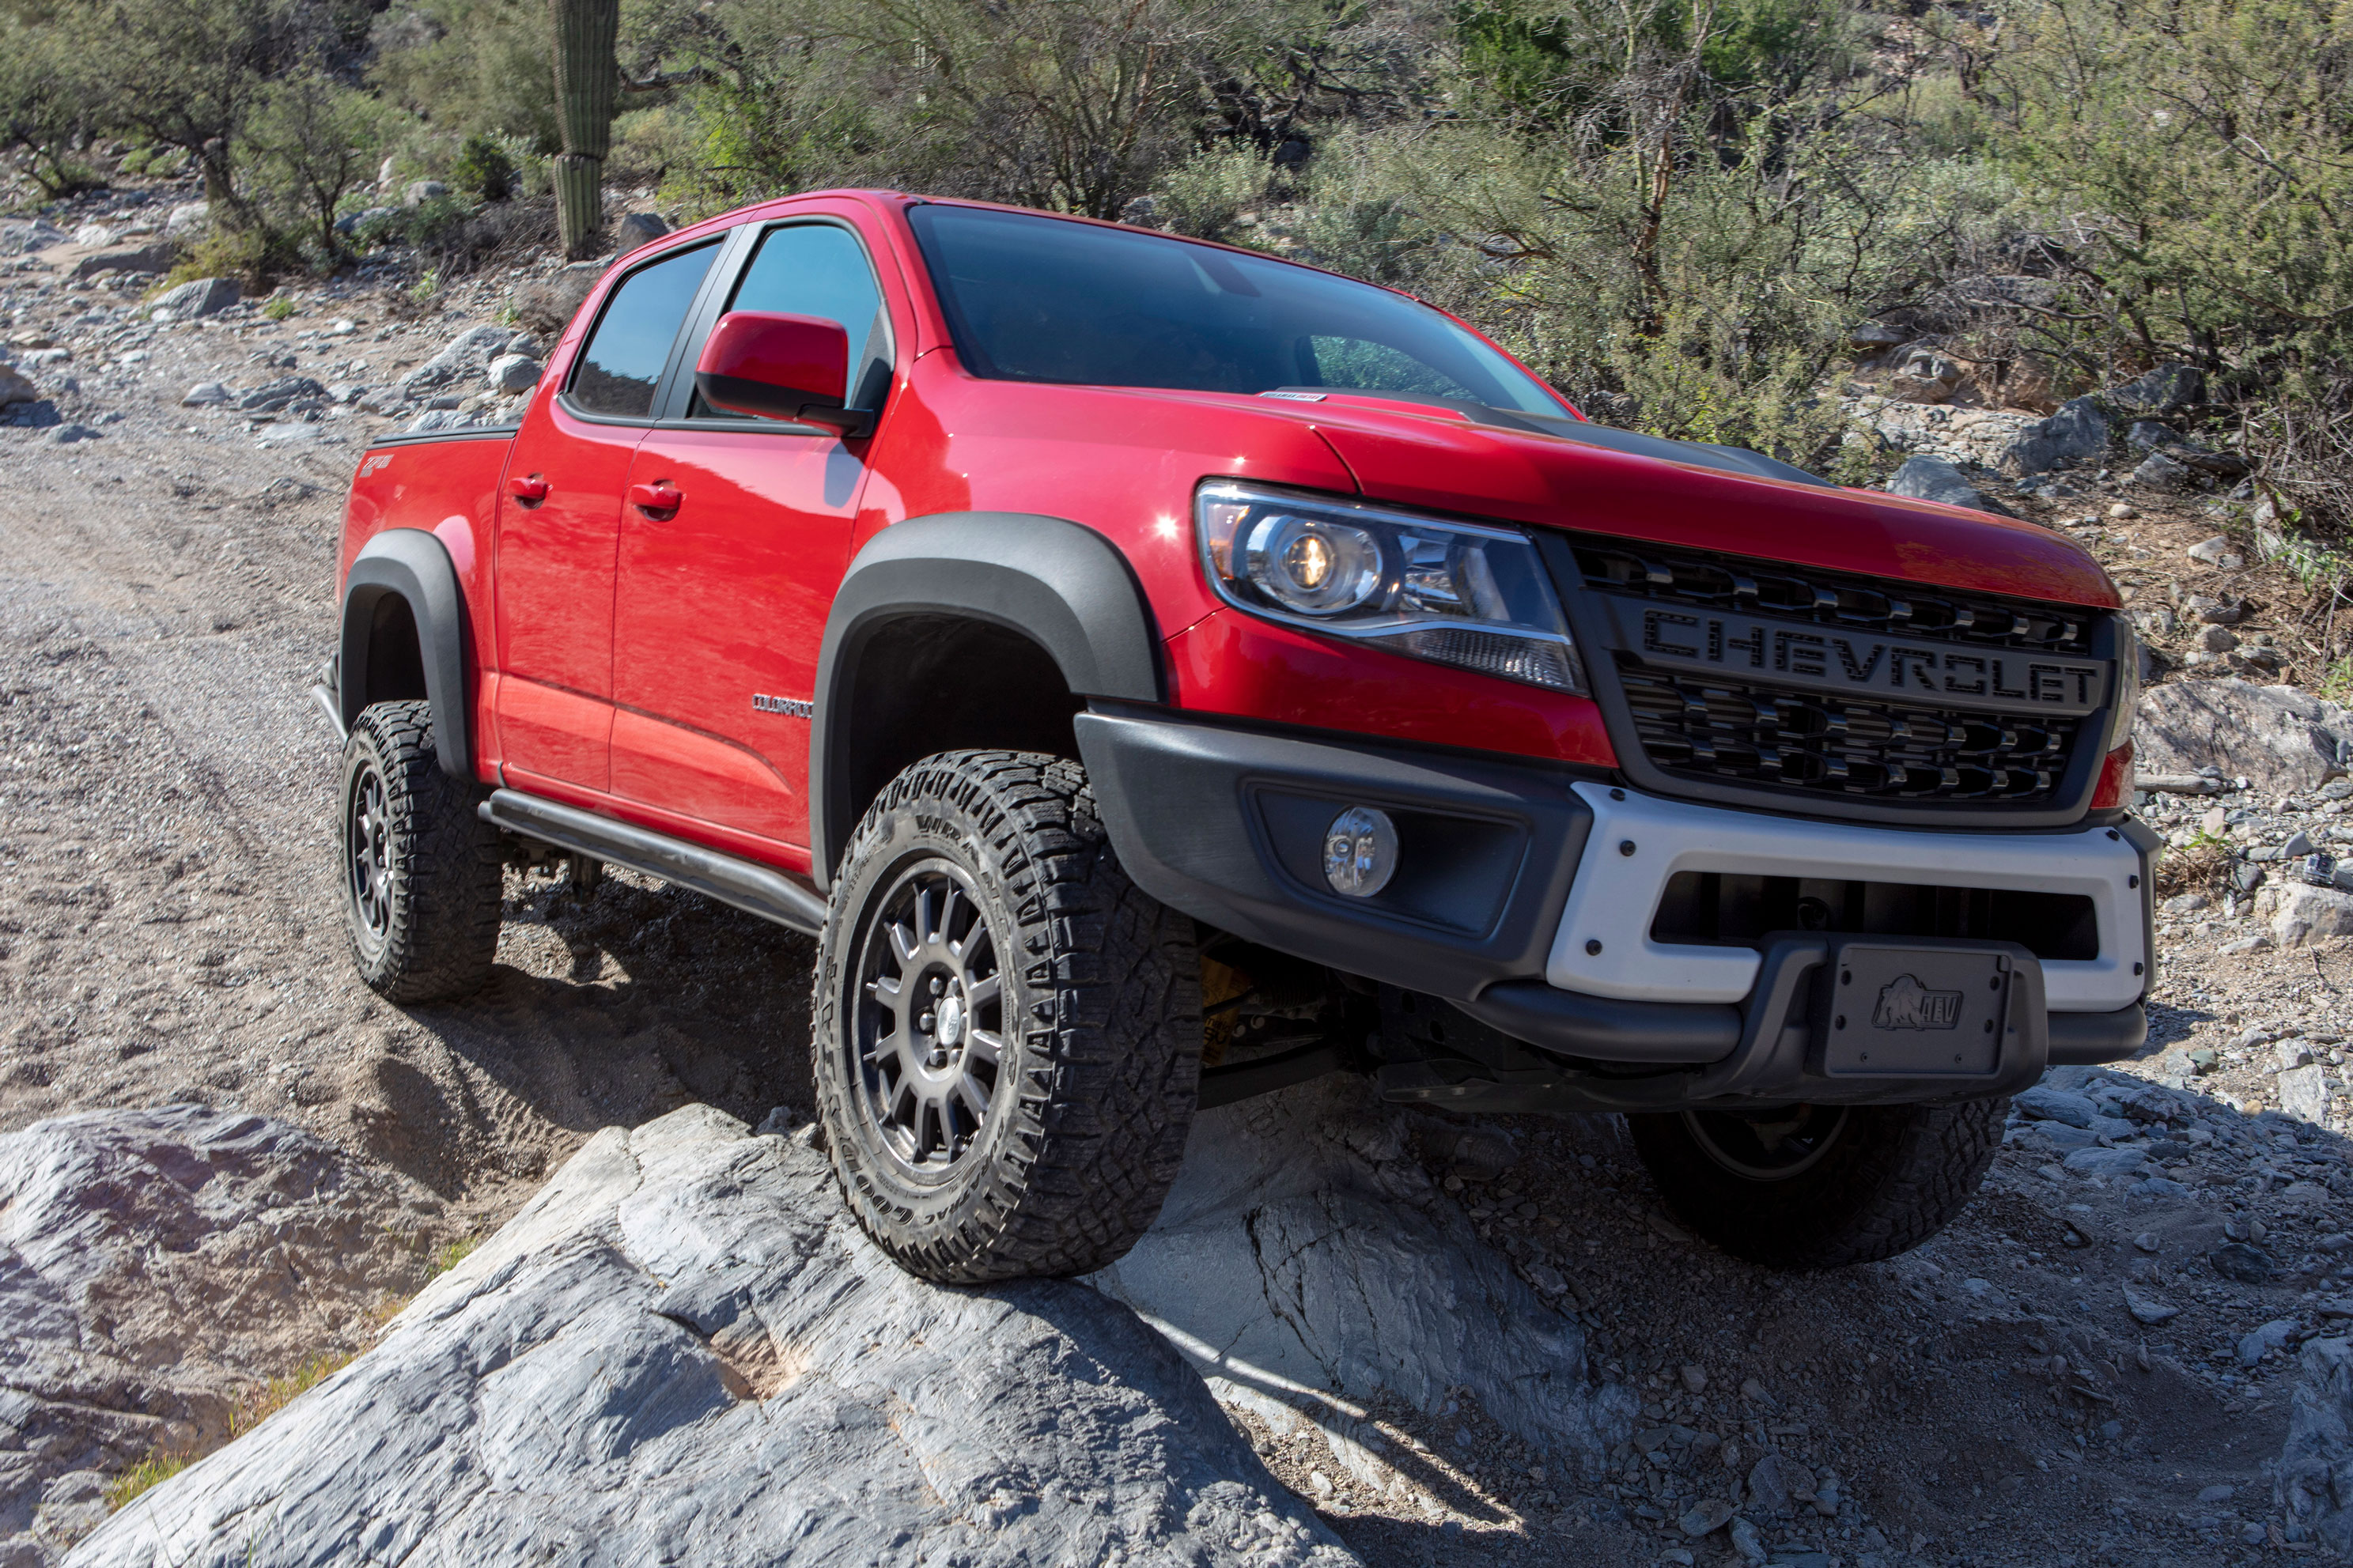 2019 Chevy Colorado Zr2 Bison Leads The Off Road Charge Gearjunkie